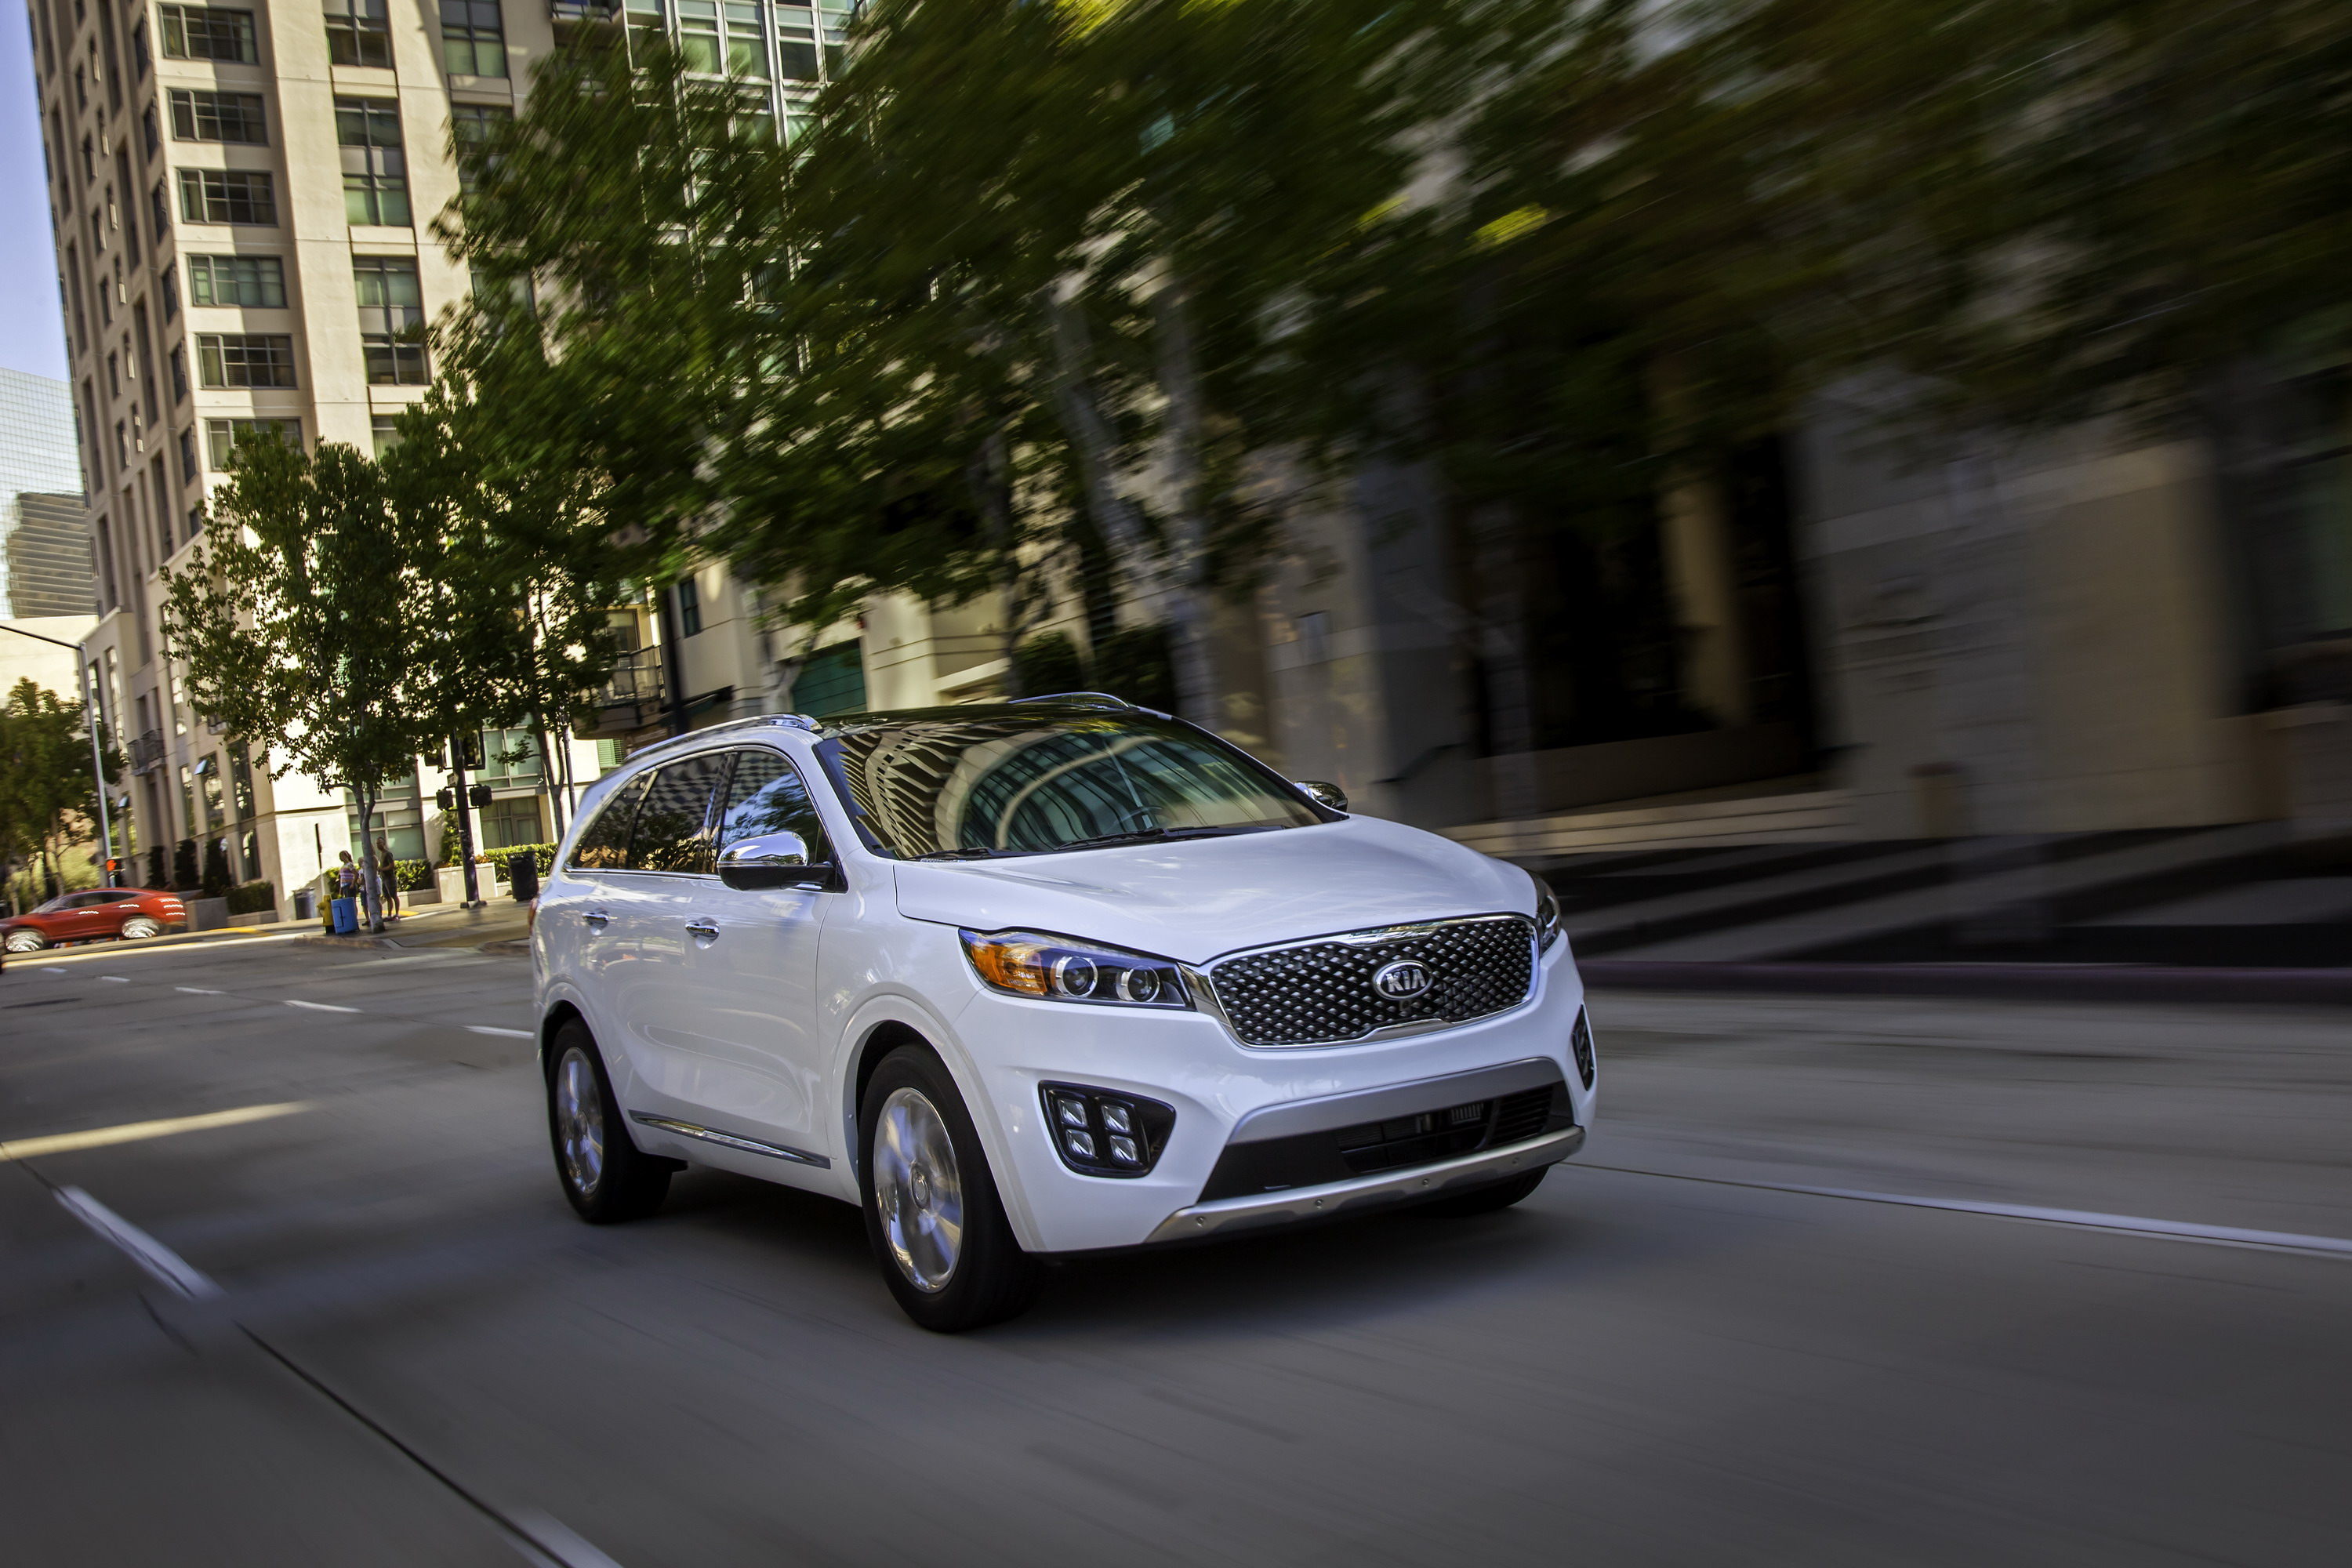 of loses review sorento offers video space turbocharged kia price three rows